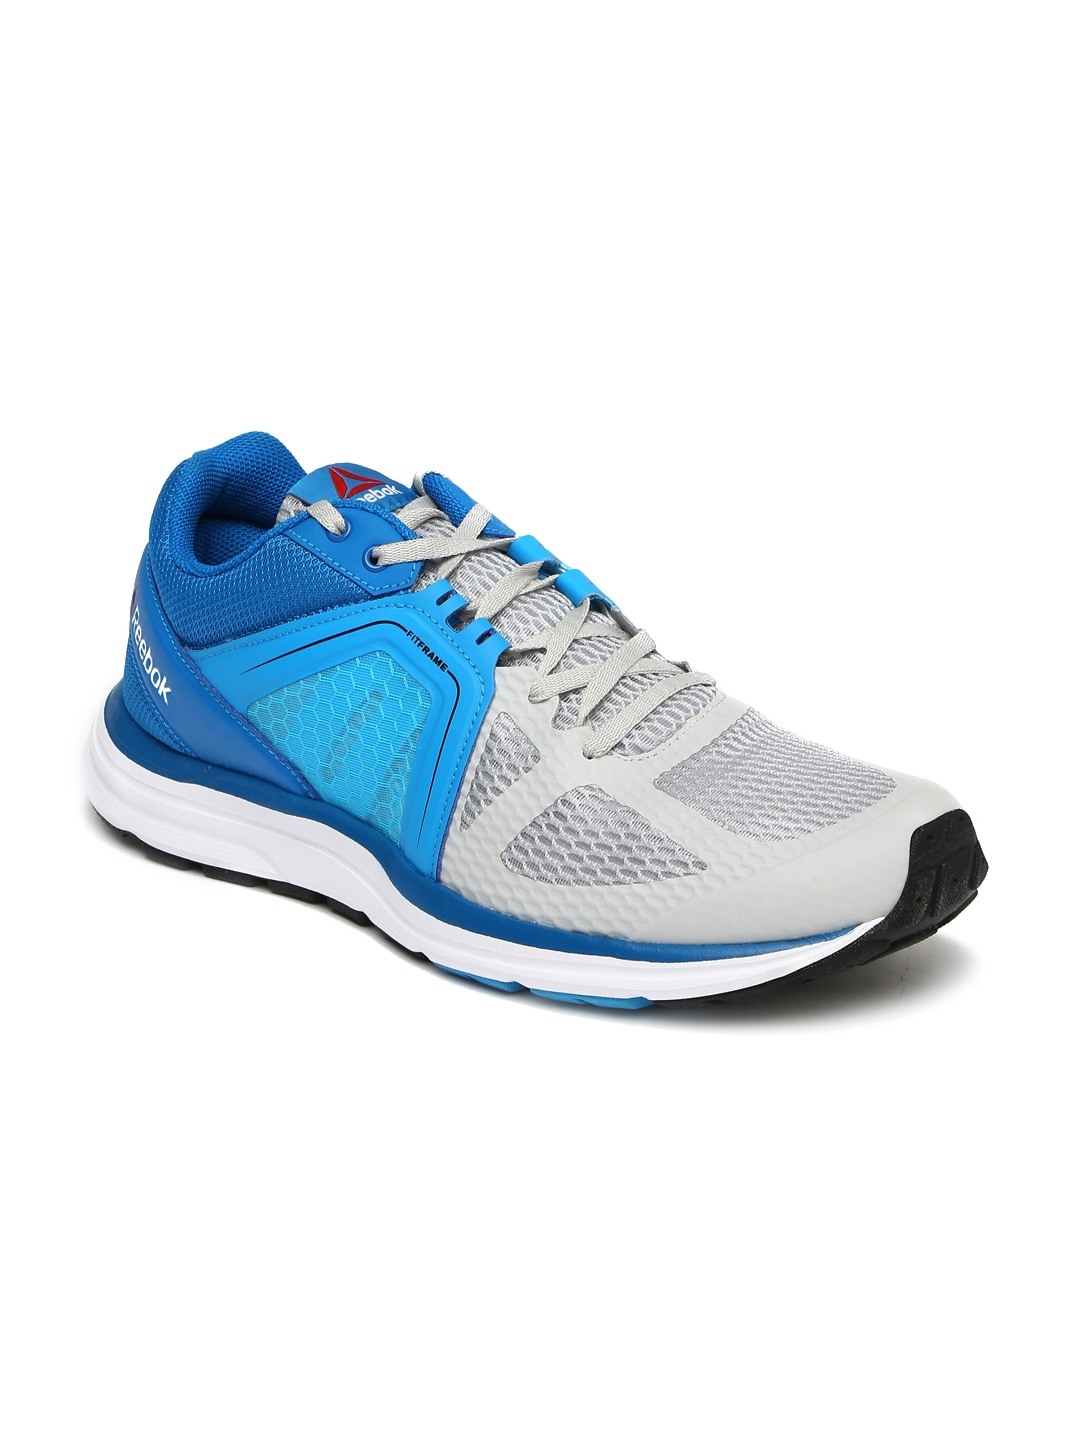 Reebok ar0339 Men Grey Exhilarun 2 0 Running Shoes - Best Price in ... 60e94fc25